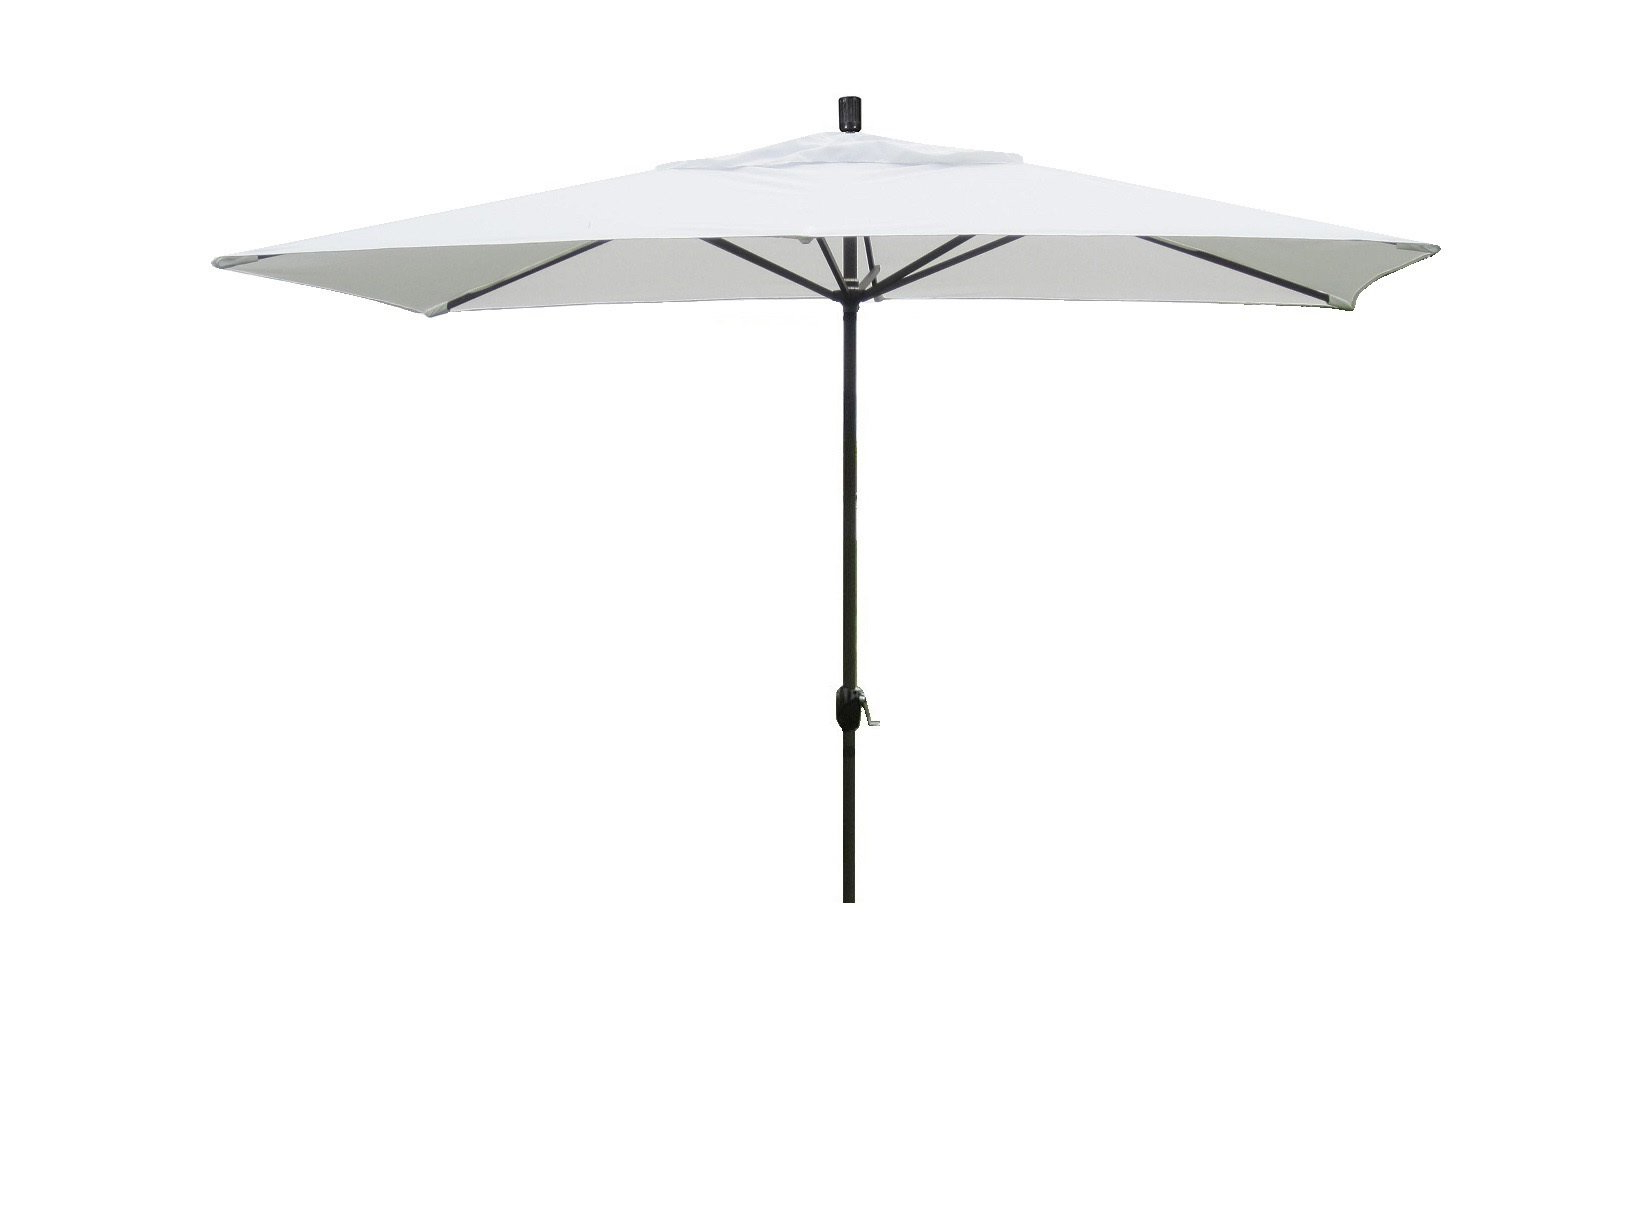 Northfleet 10' X 6' Rectangular Market Umbrella For Recent Sherlyn Rectangular Market Umbrellas (View 4 of 20)